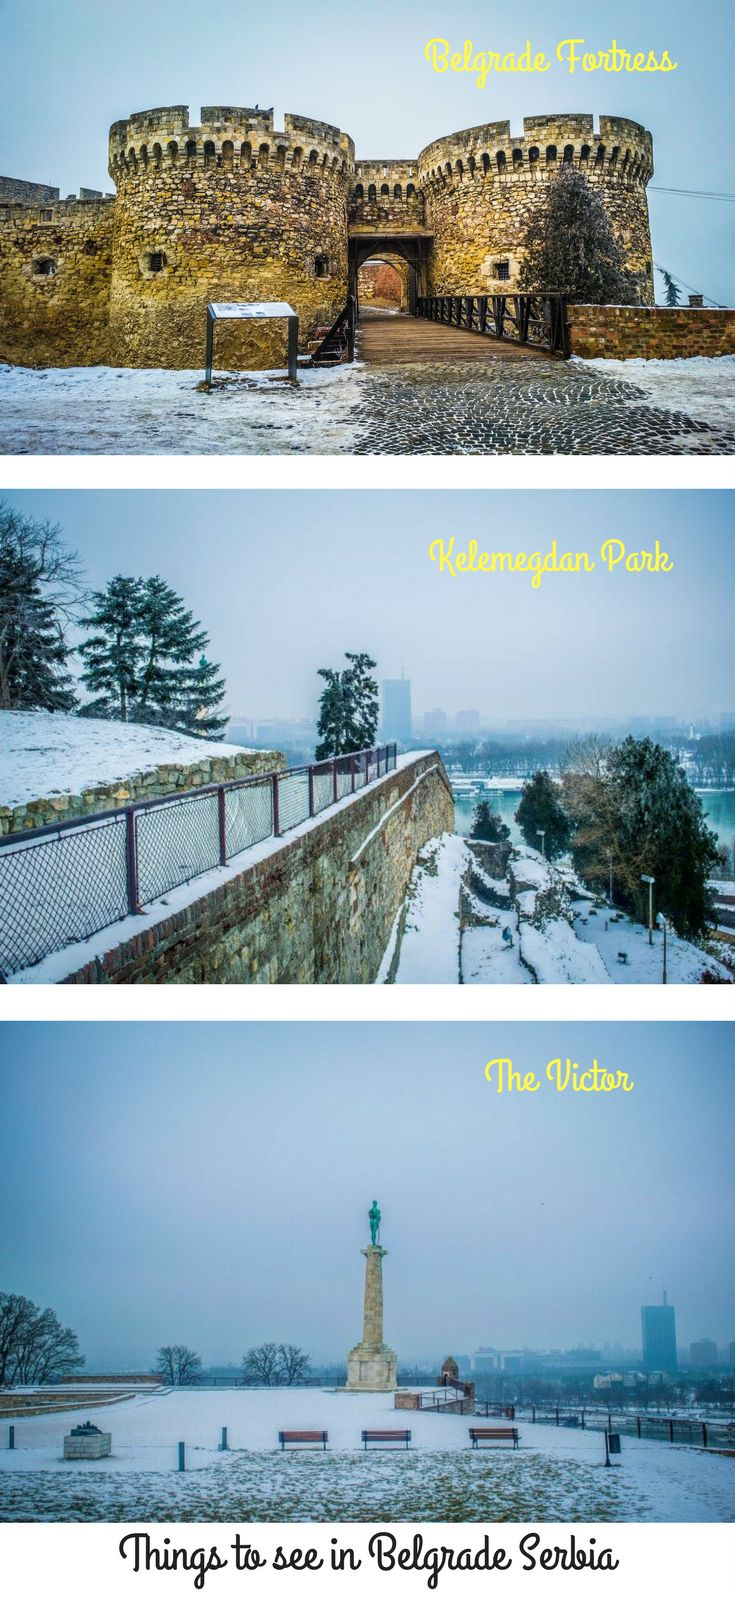 What to do in Belgrade visit Belgrade Fortress which is located in the Kelemegdan Park on the banks of the Danube River  | Things to do in Belgrade | Belgrade Serbia | Kelemegdan Fortress | Belgrade in the Balkans | Whats in Belgrade | Belgrade Fortress | Belgrade Attractions |